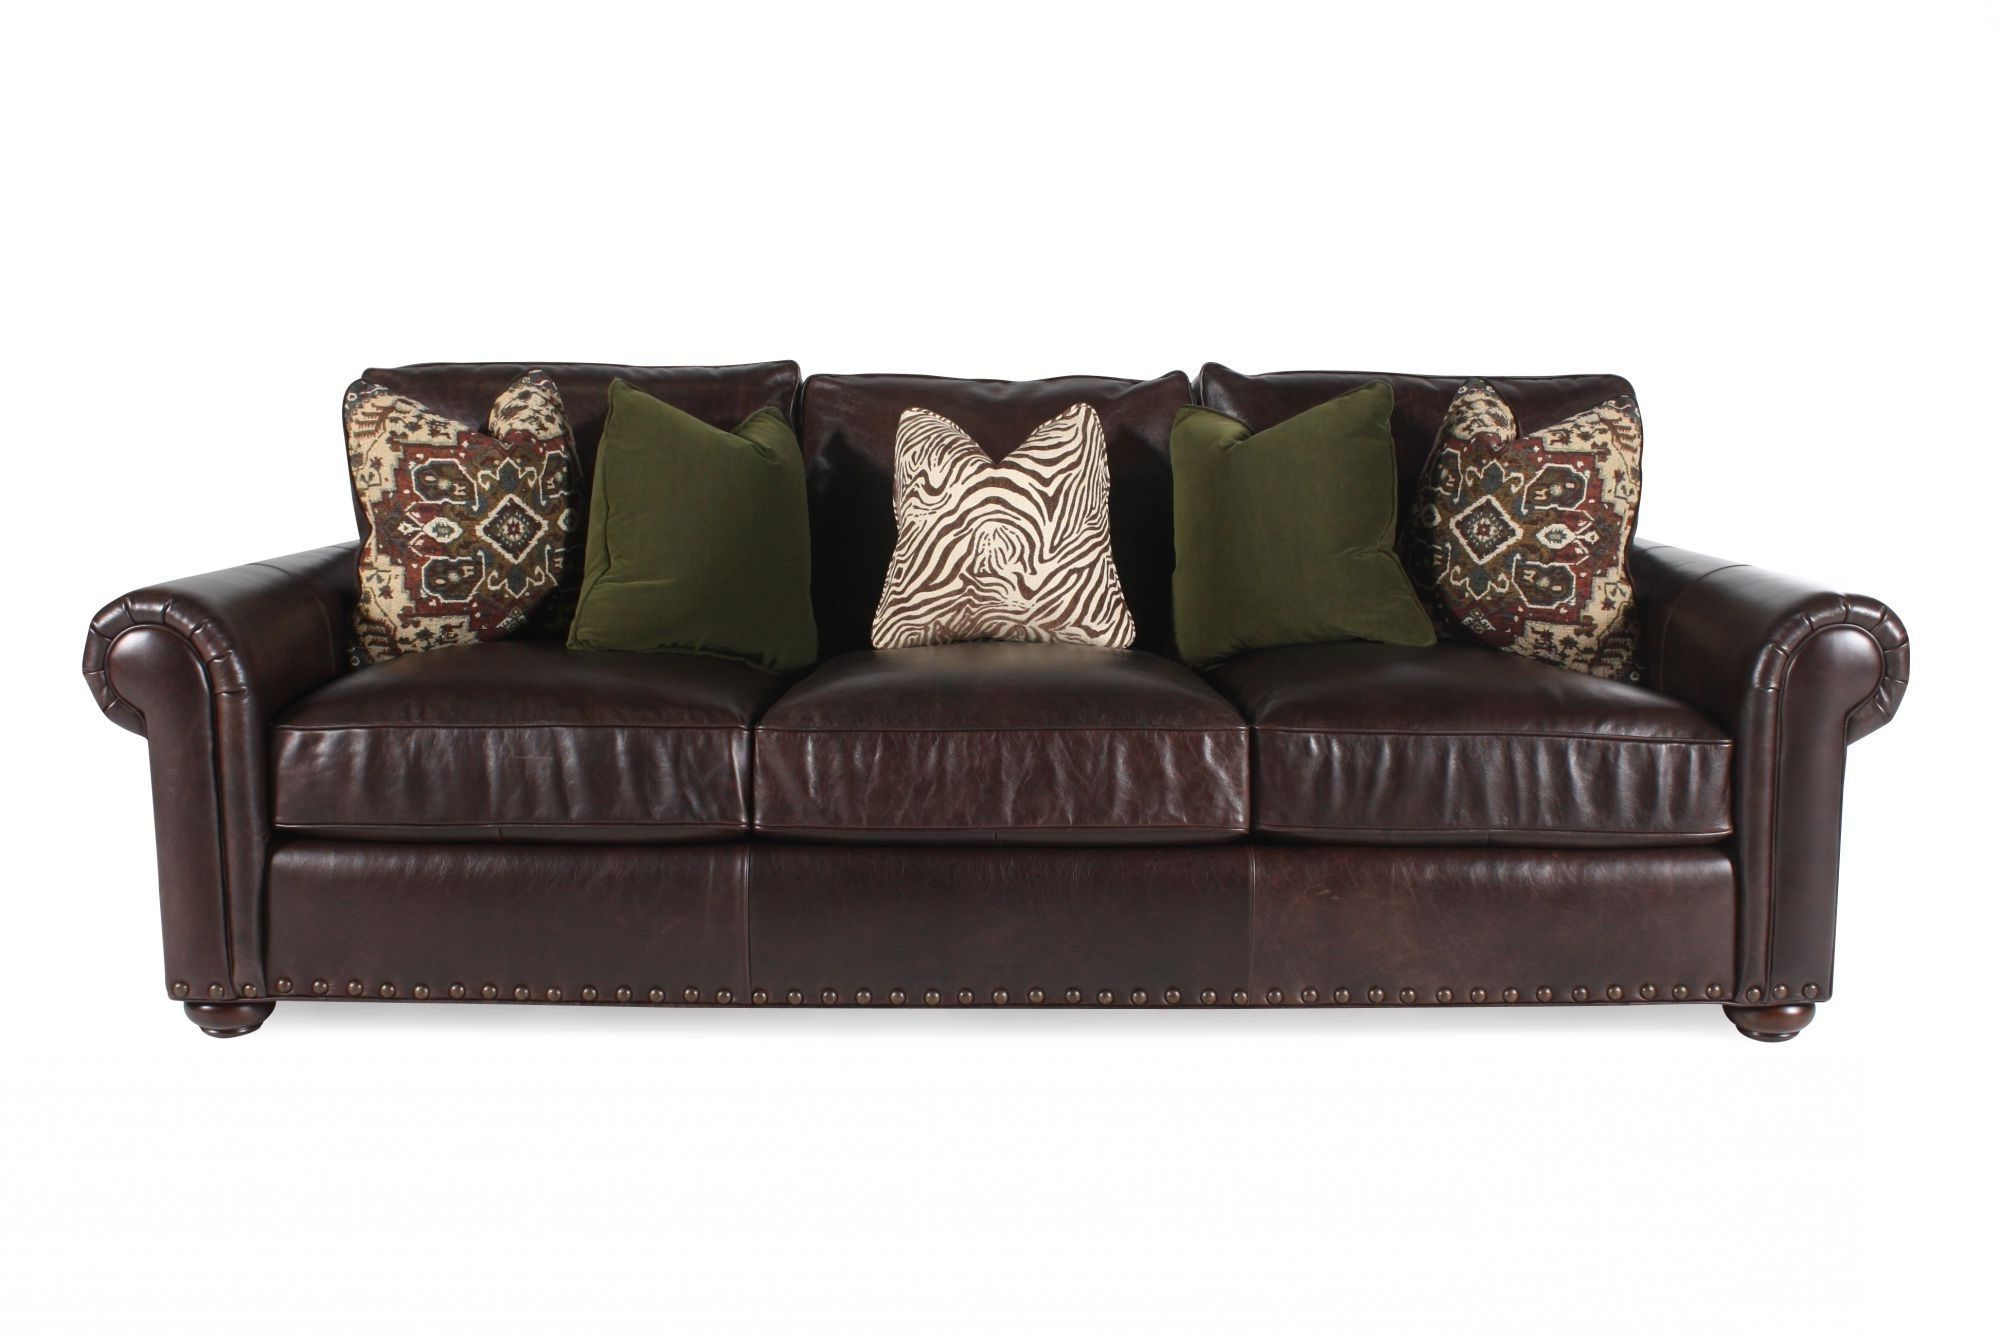 For The Home Regarding Dillards Sectional Sofas (View 9 of 15)